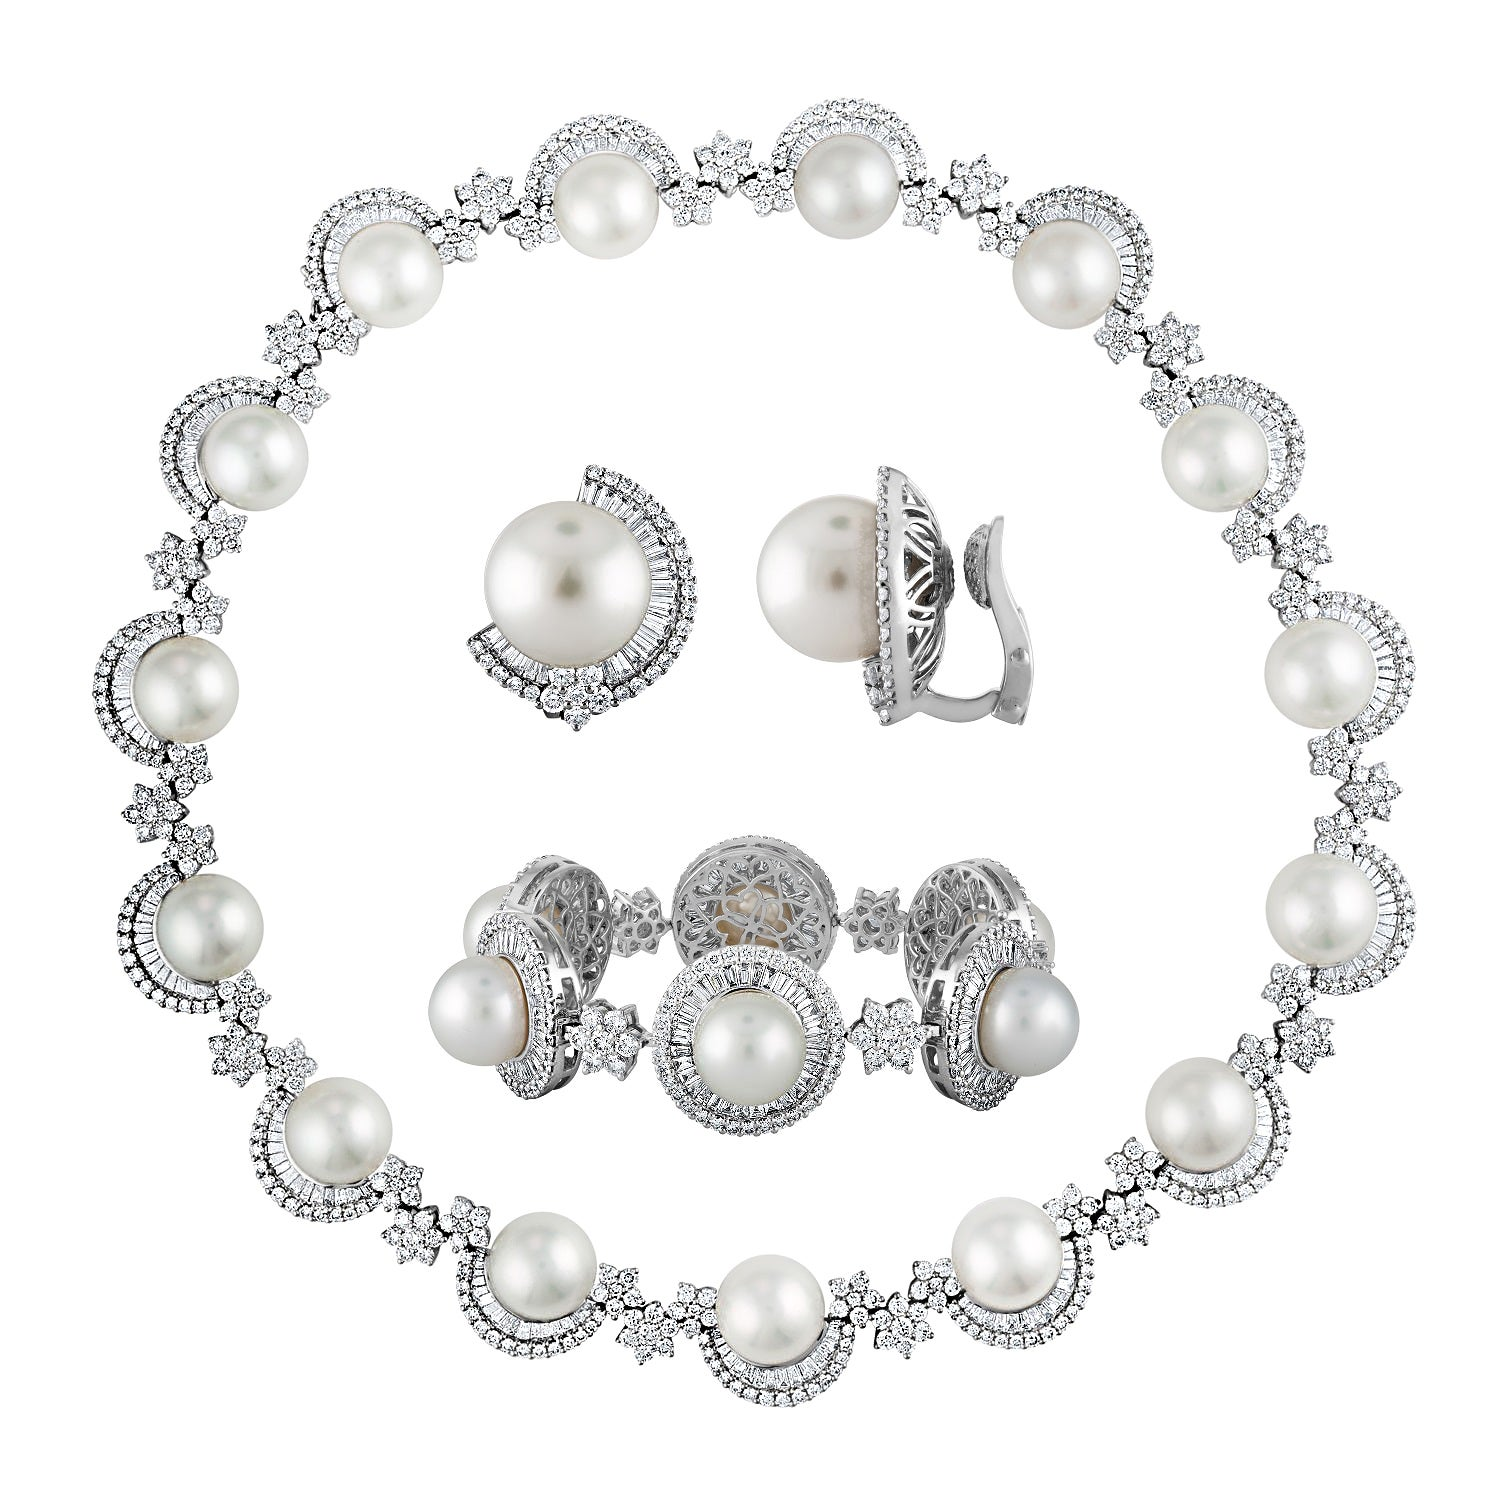 46.00 Carat Diamond and South Sea Pearl Gold Necklace Earrings Bracelet Set